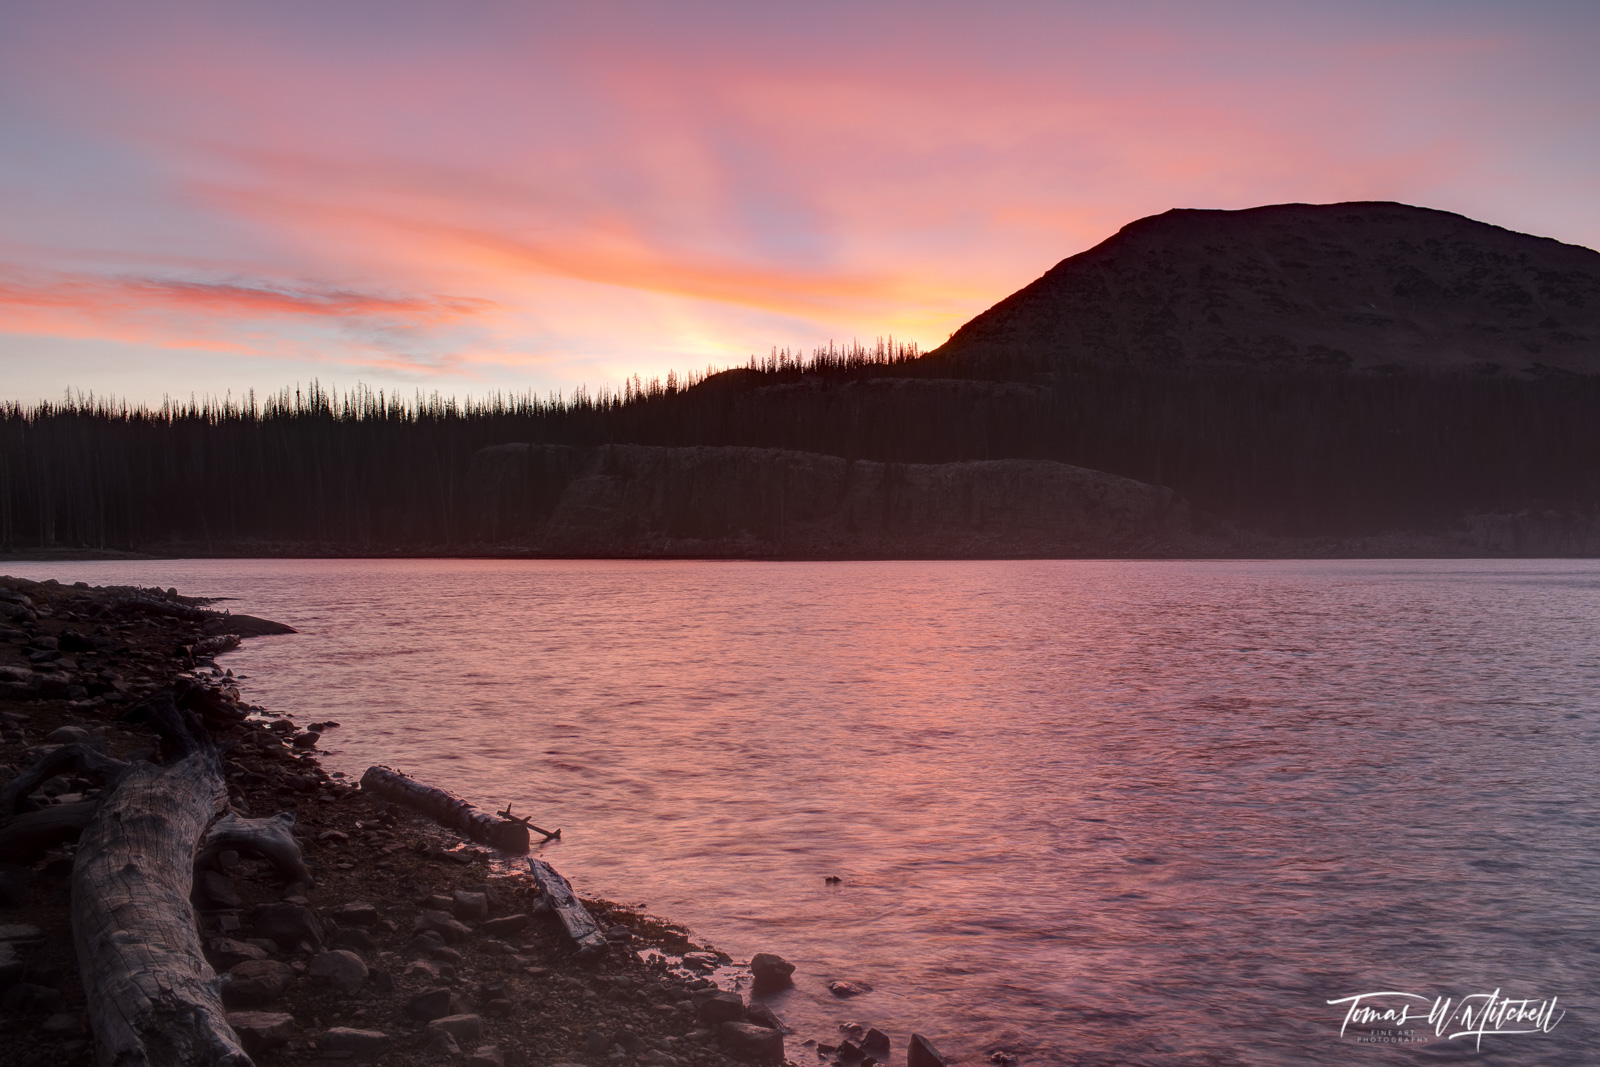 Limited Edition of 100 Museum Grade, Fine Art Prints.October 17, 2020 my wife and I spent the day hiking the Clyde Lake loop...